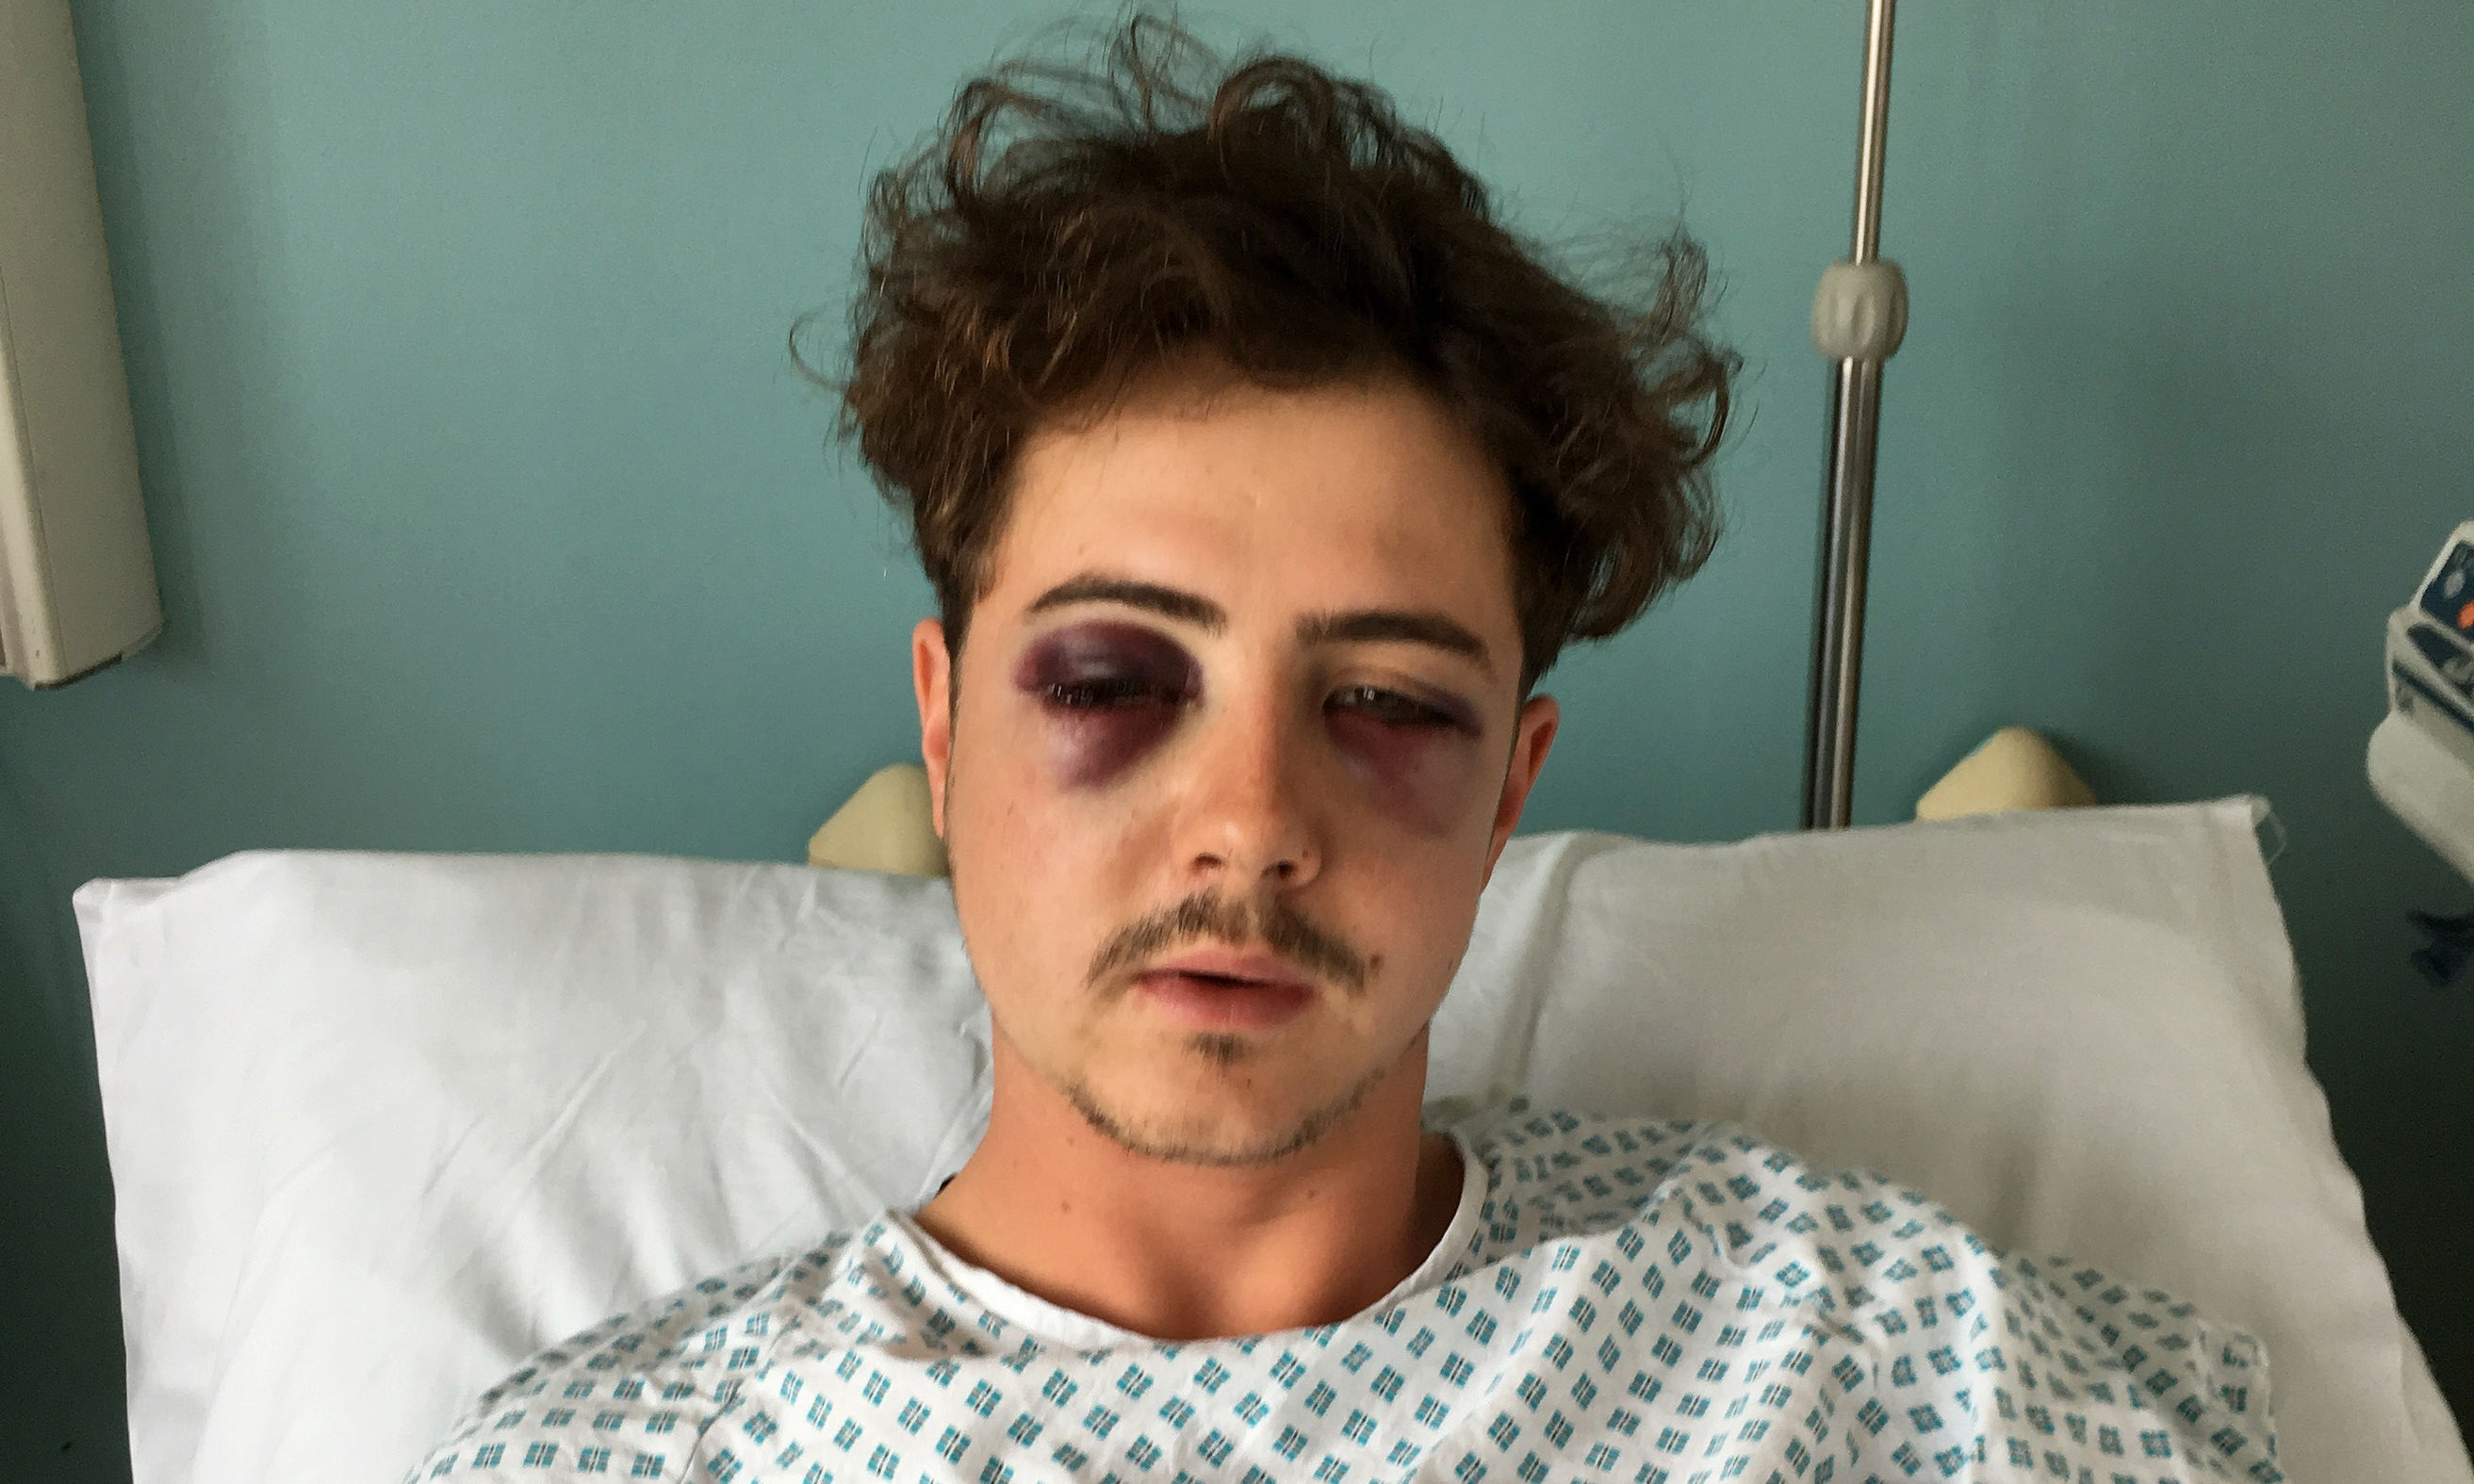 Michael Voller who was left with serious injuries after an unprovoked attack by a fellow Spurs supporter